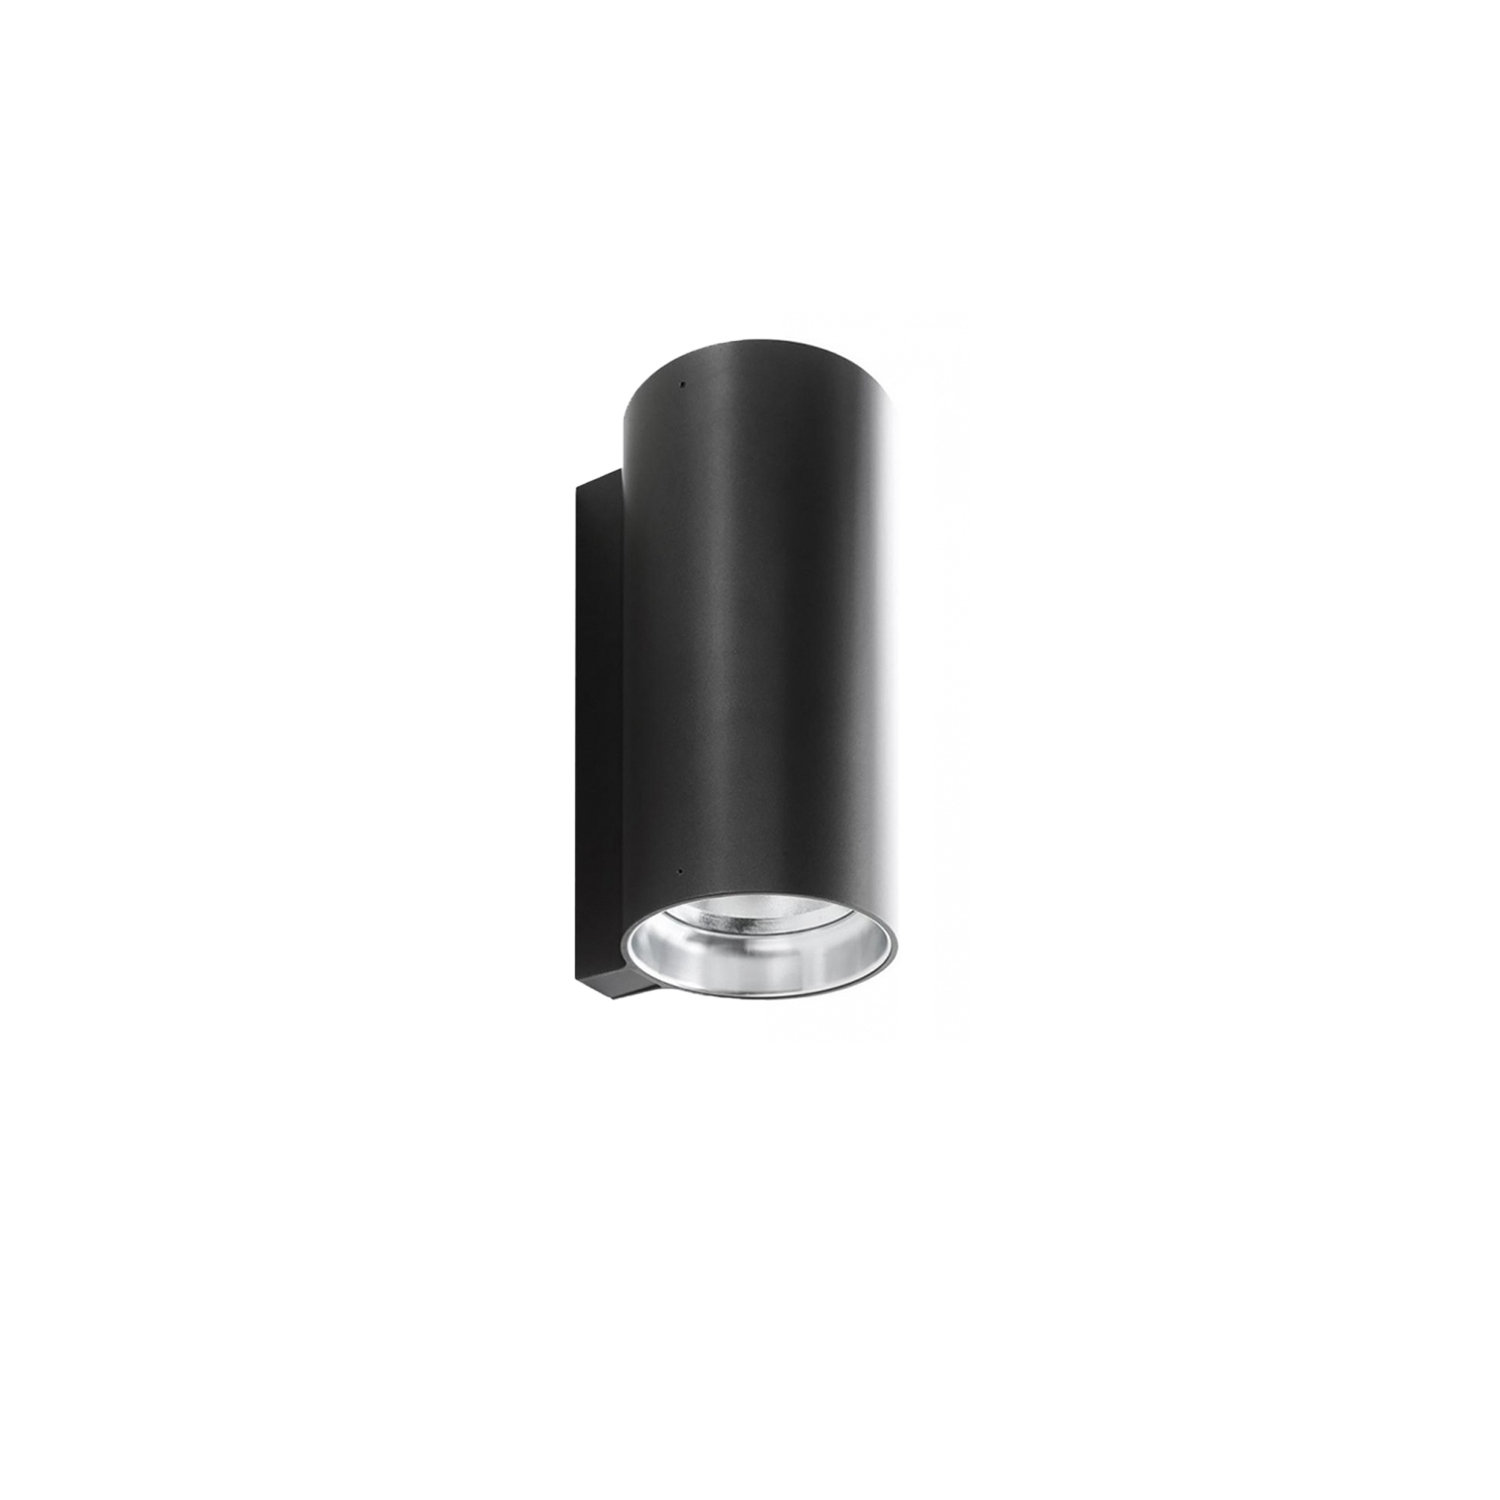 E04 Wall Lamp -  Wall fixtures for indoor use. The cylindrical body connects smoothly to architectural surfaces. The optics permit a wide range of lighting solutions for multiple contexts.  Size and finishes are varies please enquire for more information | Matter of Stuff